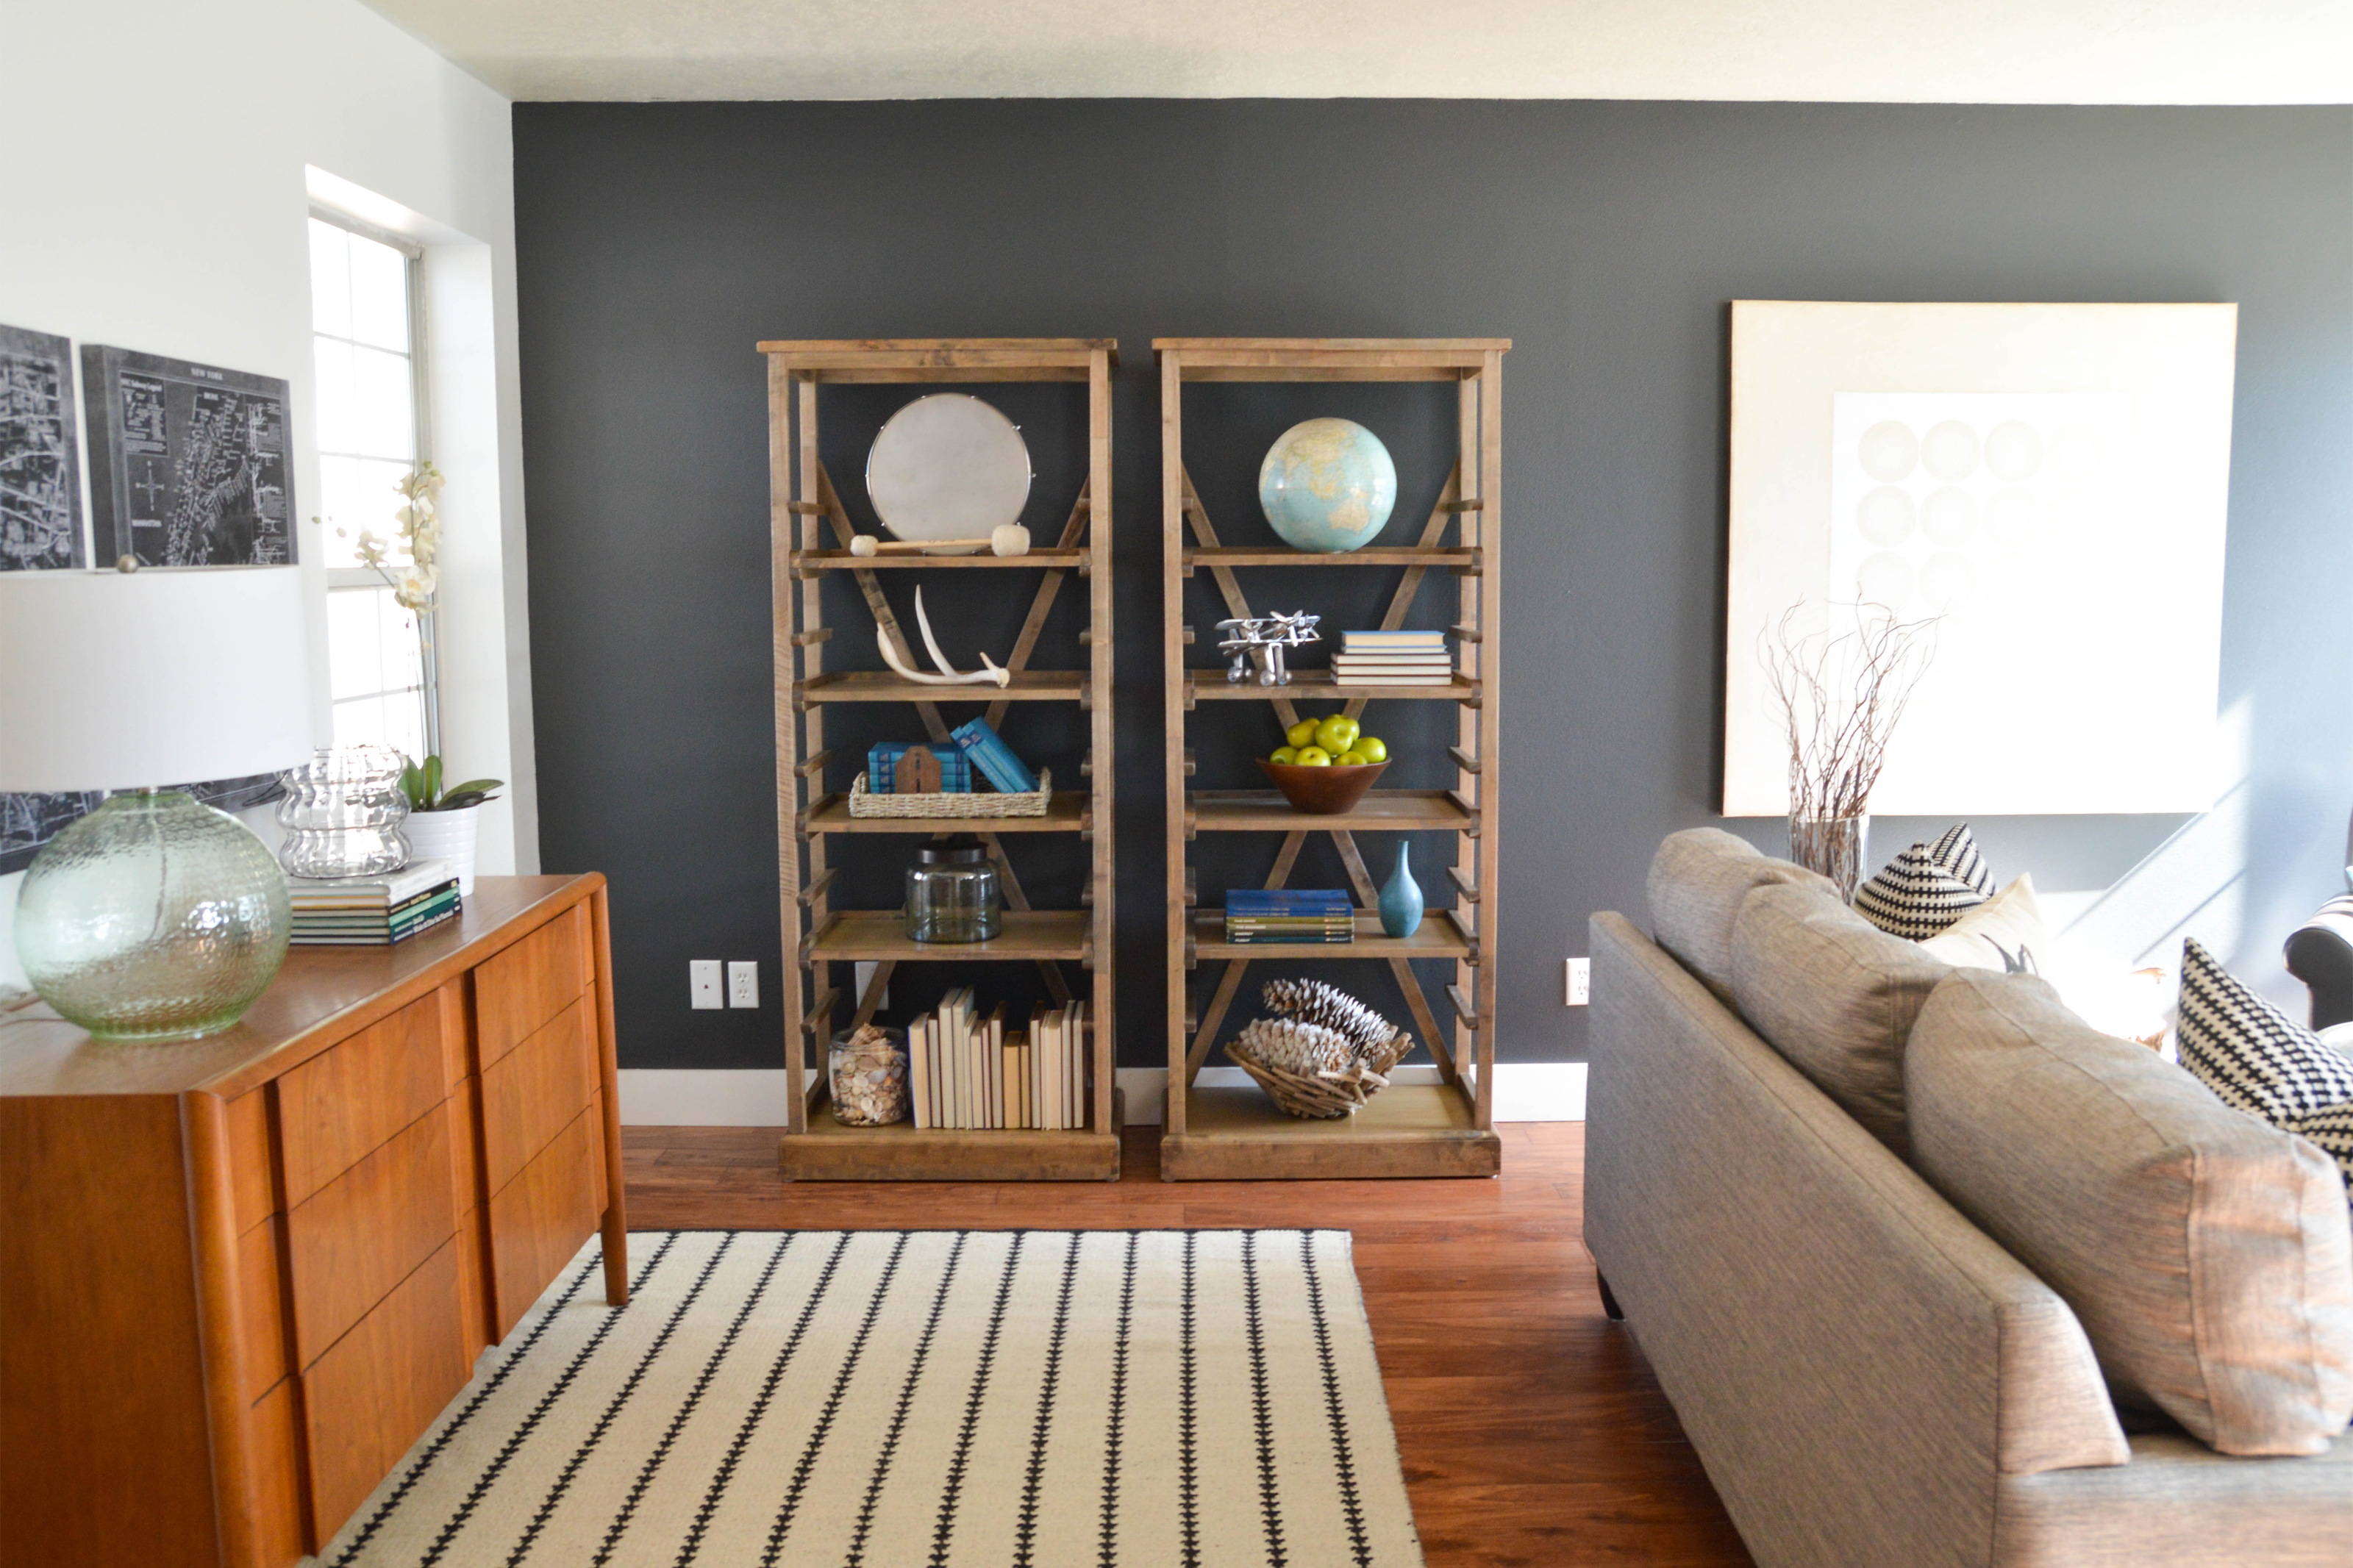 Wall Paint Colors: Picking Paint Colors the Mistake-Proof Way